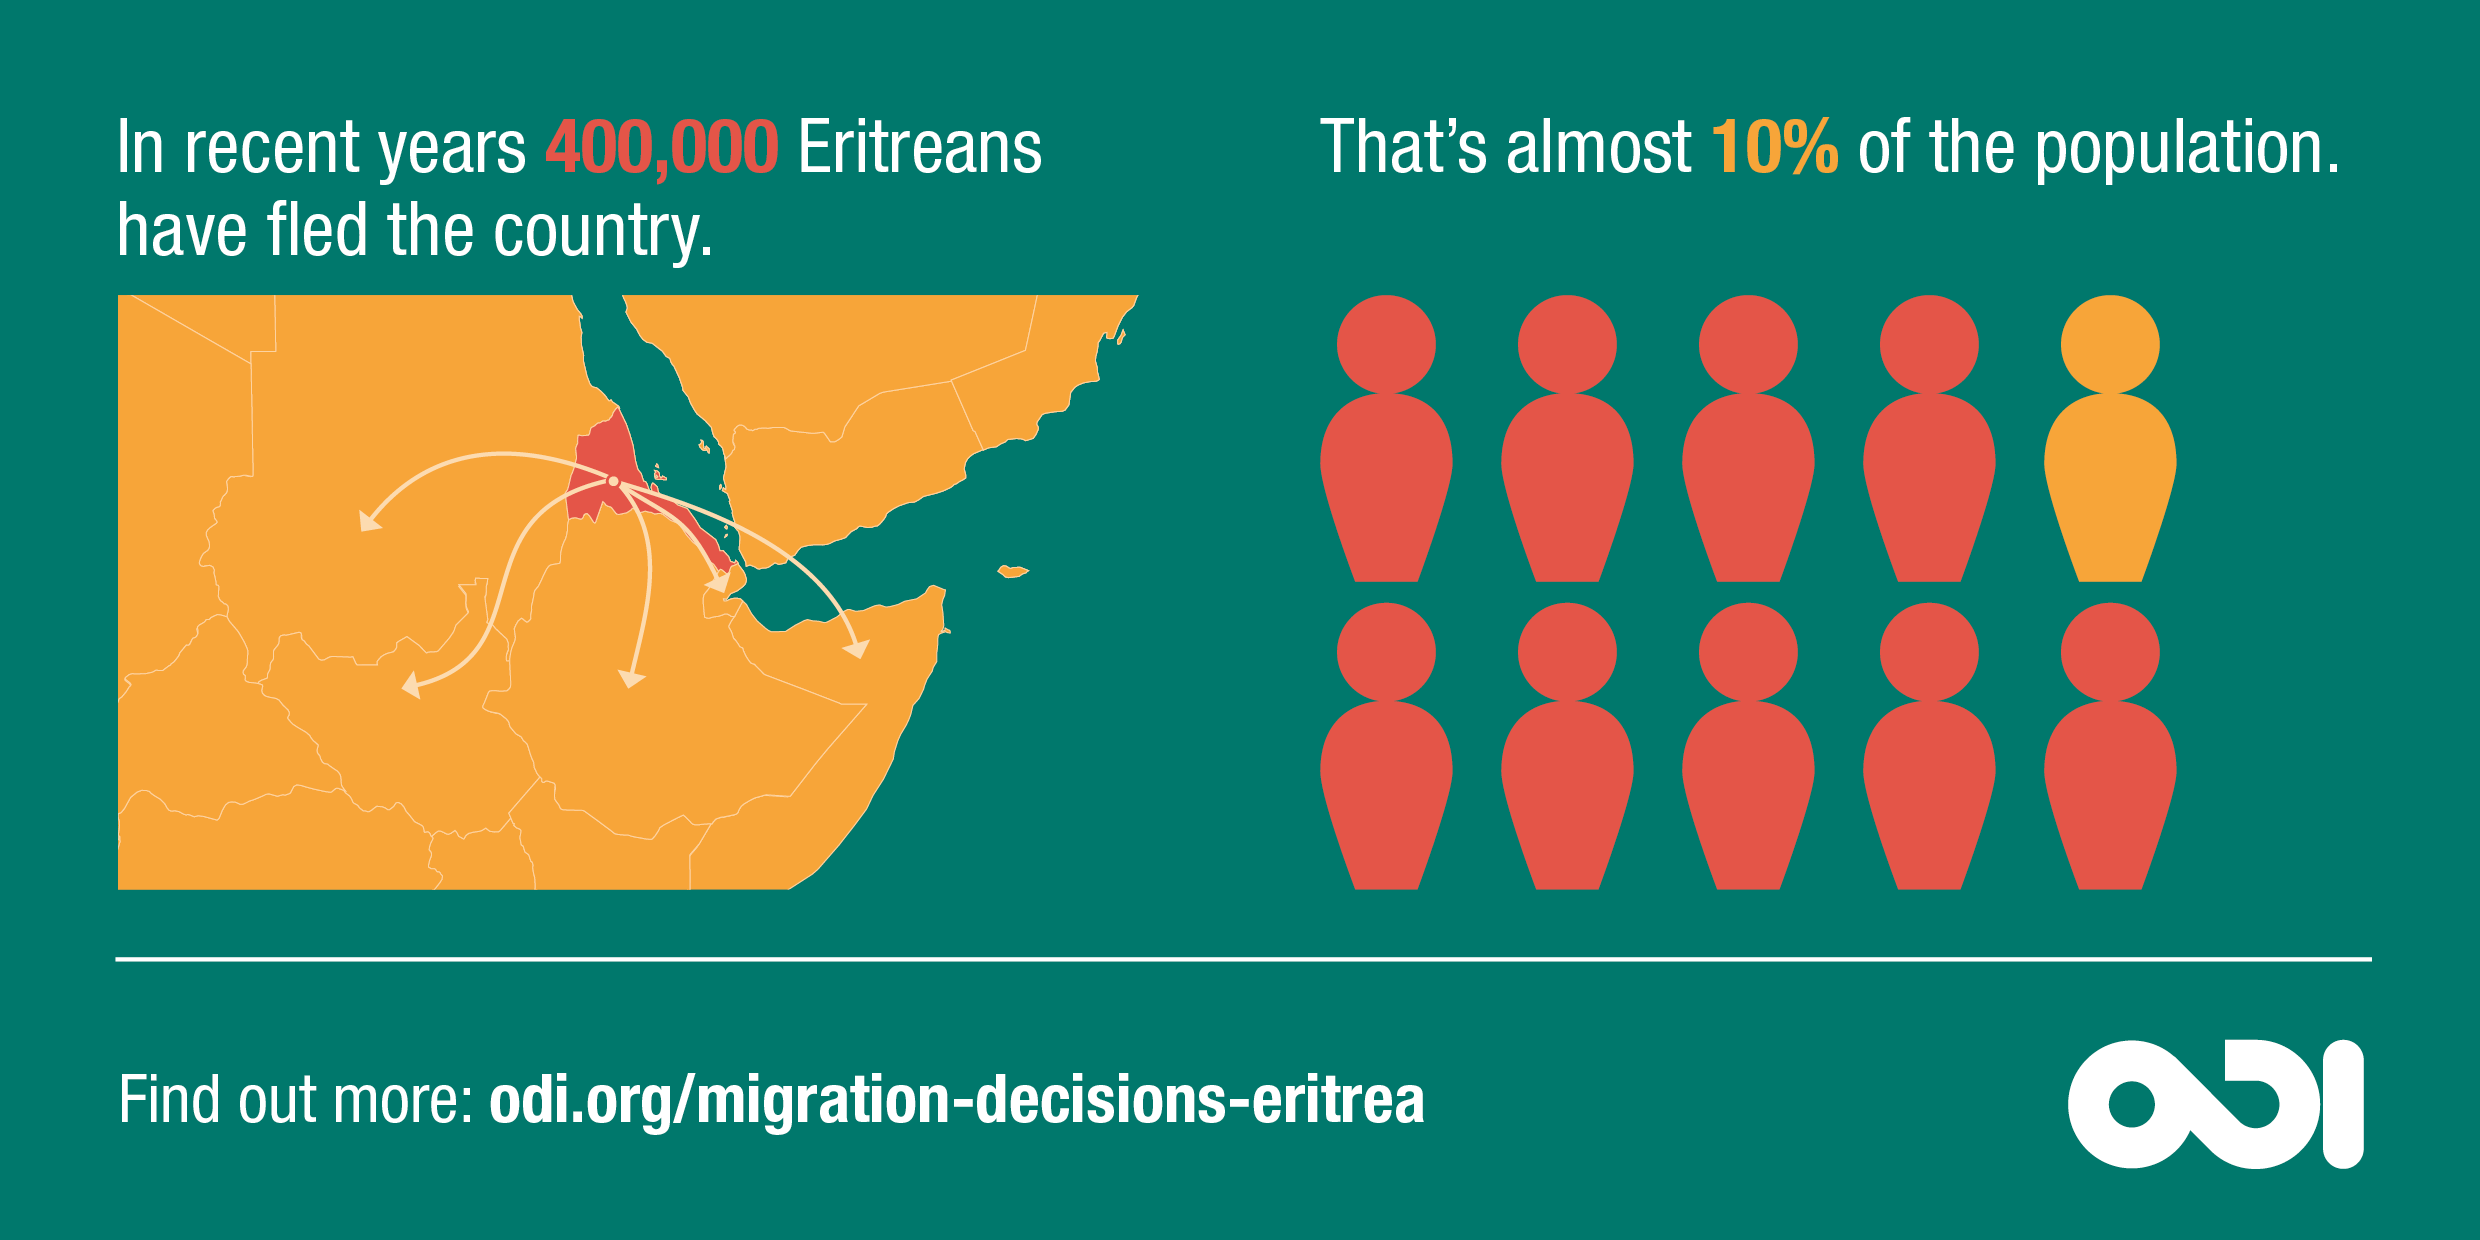 Infographic: in recent years, 10% of the population of Eritrea has fled the country